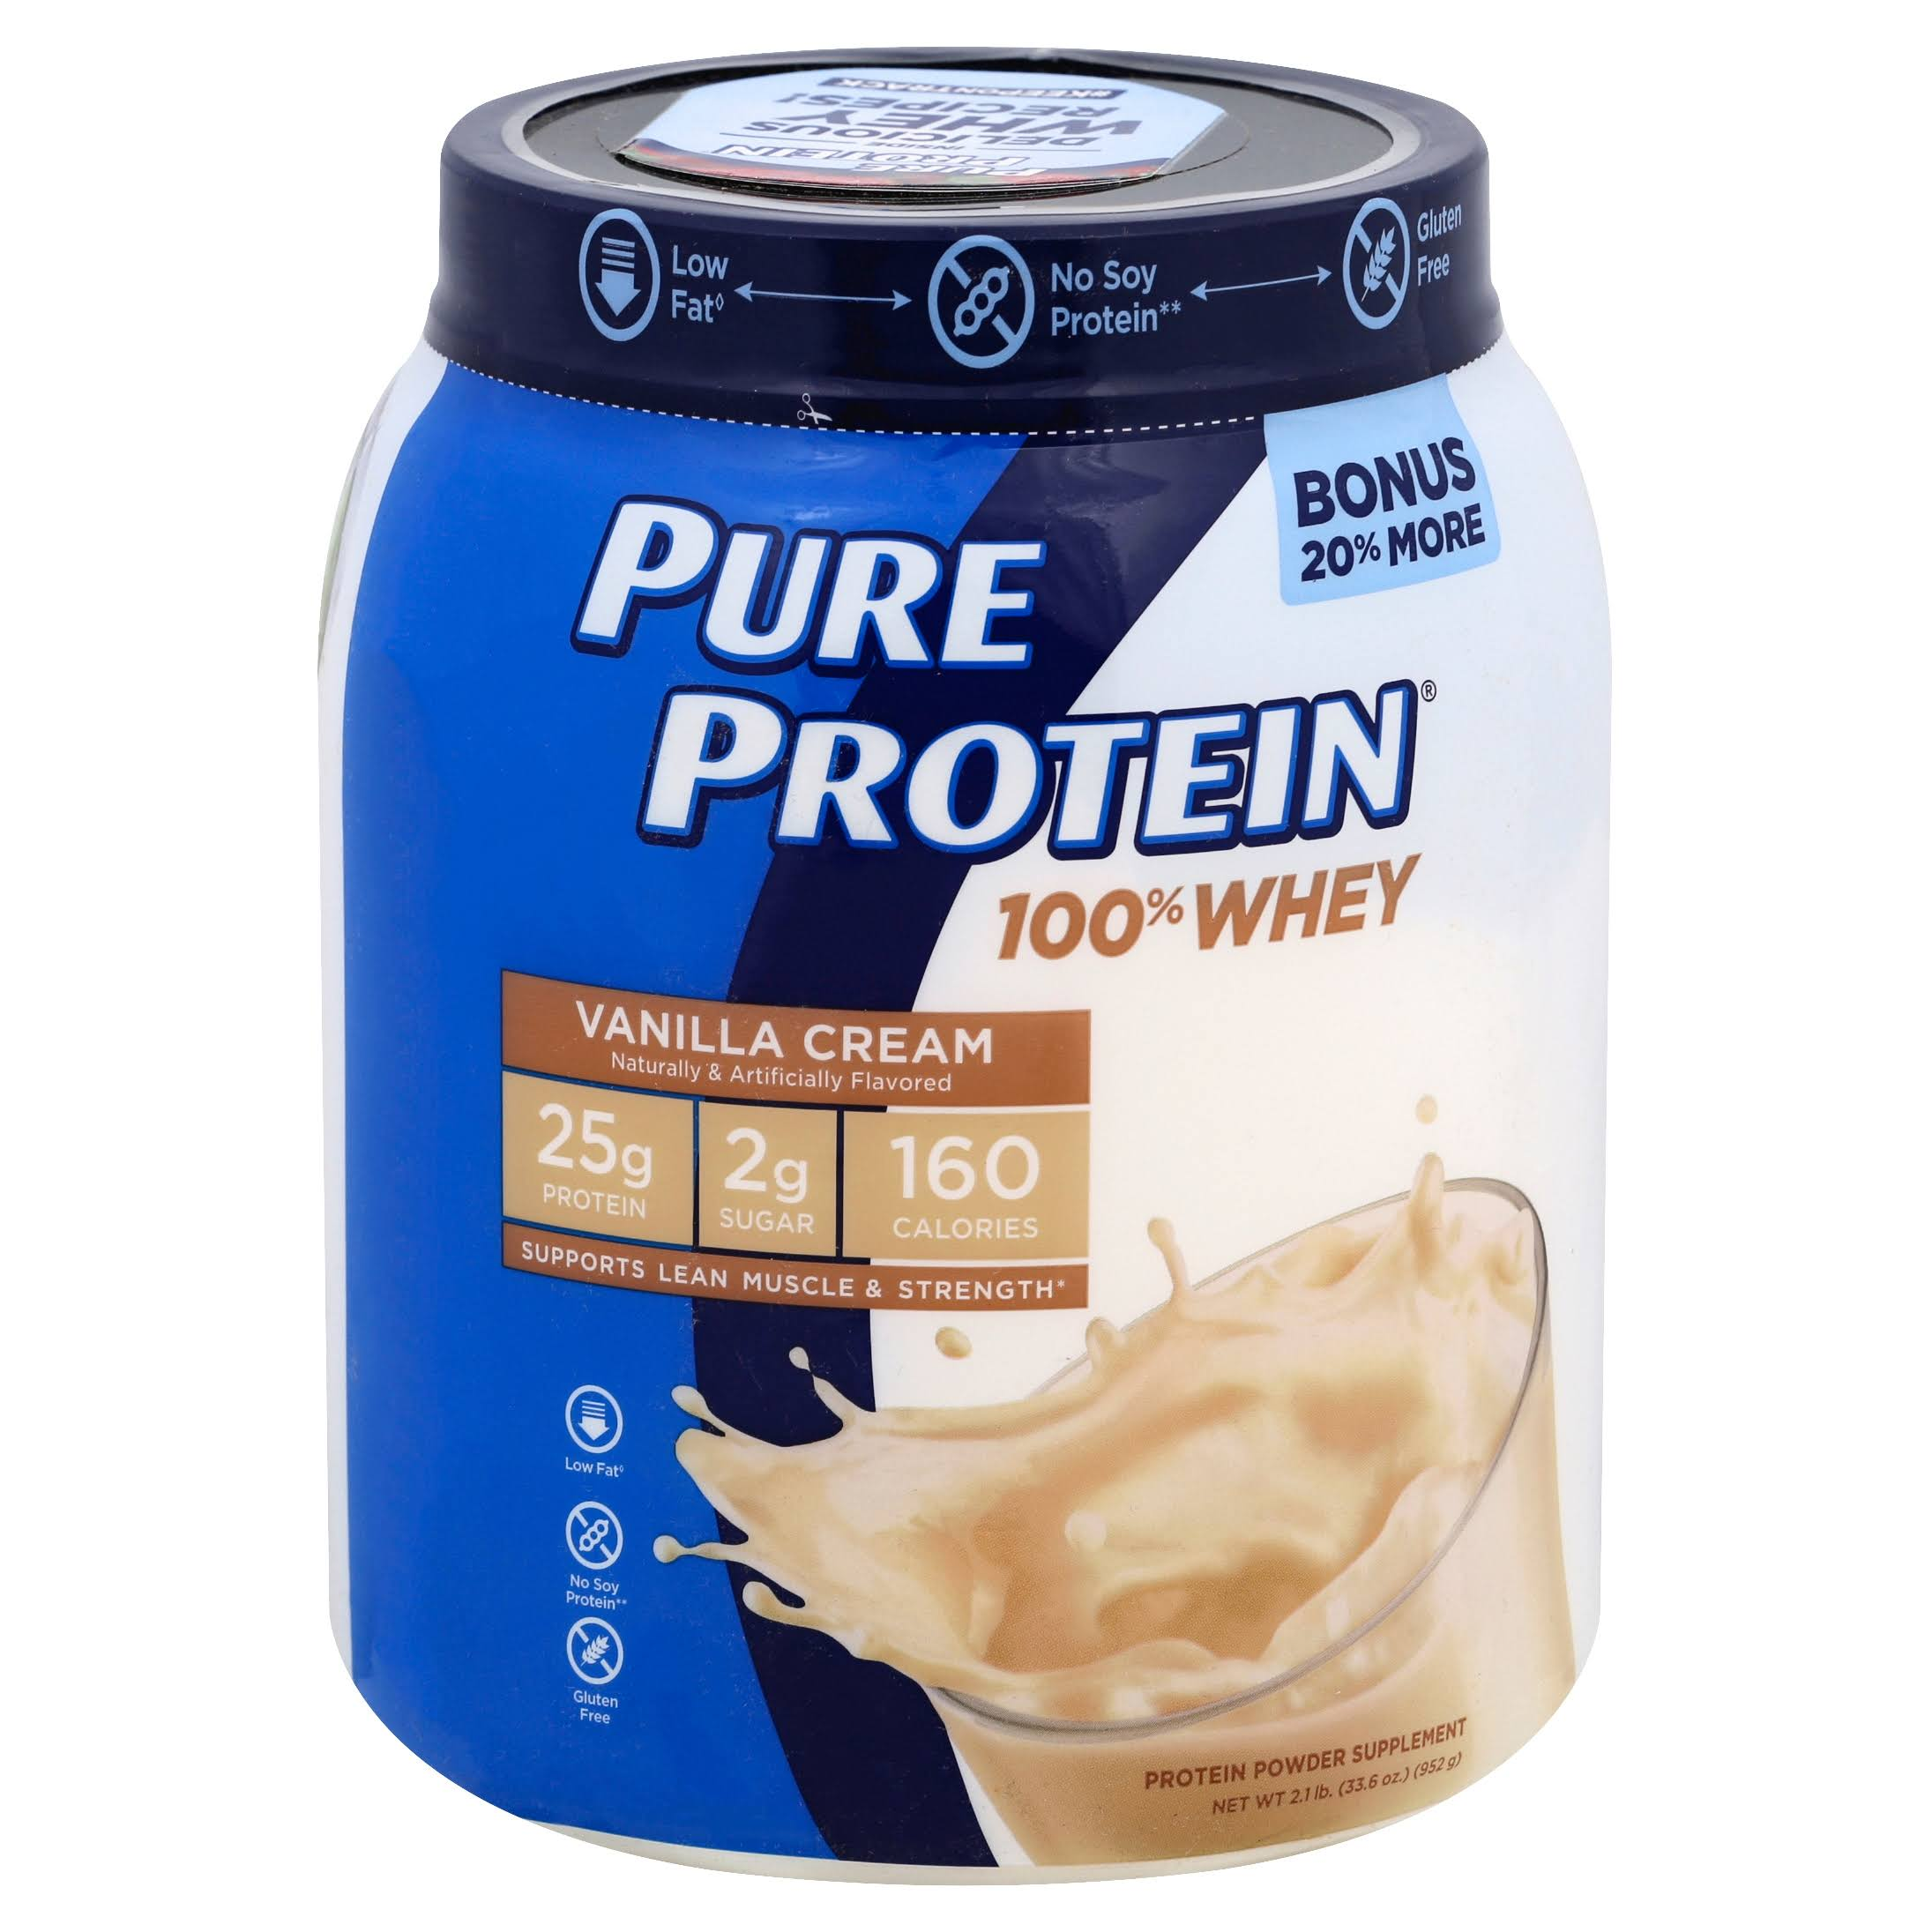 Pure Protein 100% Whey Protein Powder - Vanilla Cream, 28oz